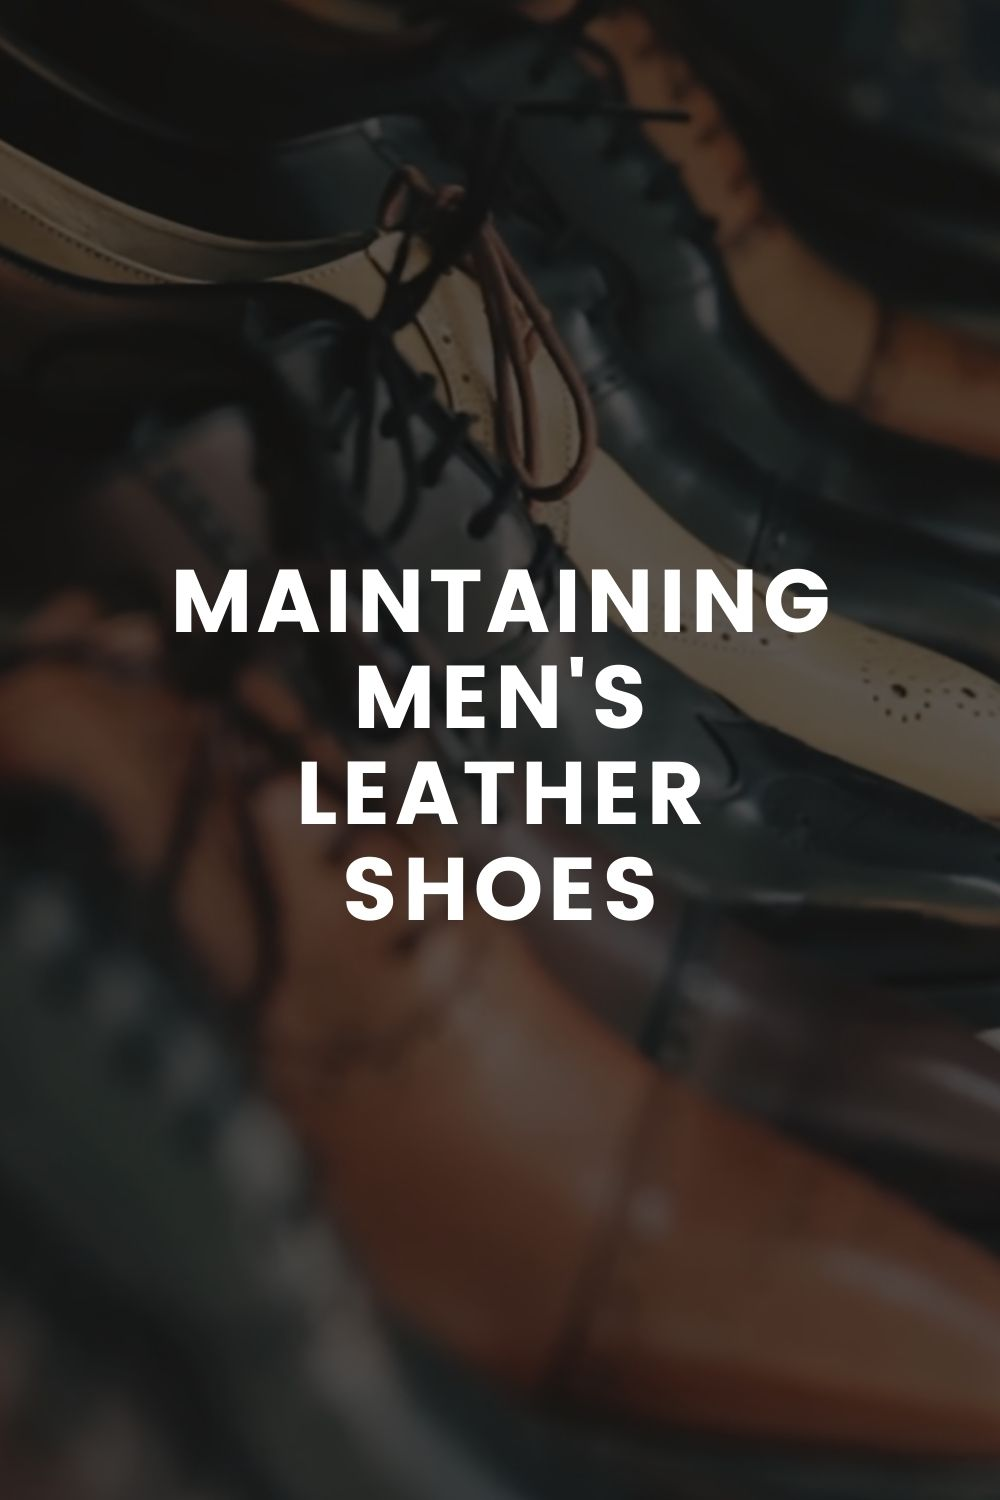 Maintaining Men's Leather Shoes